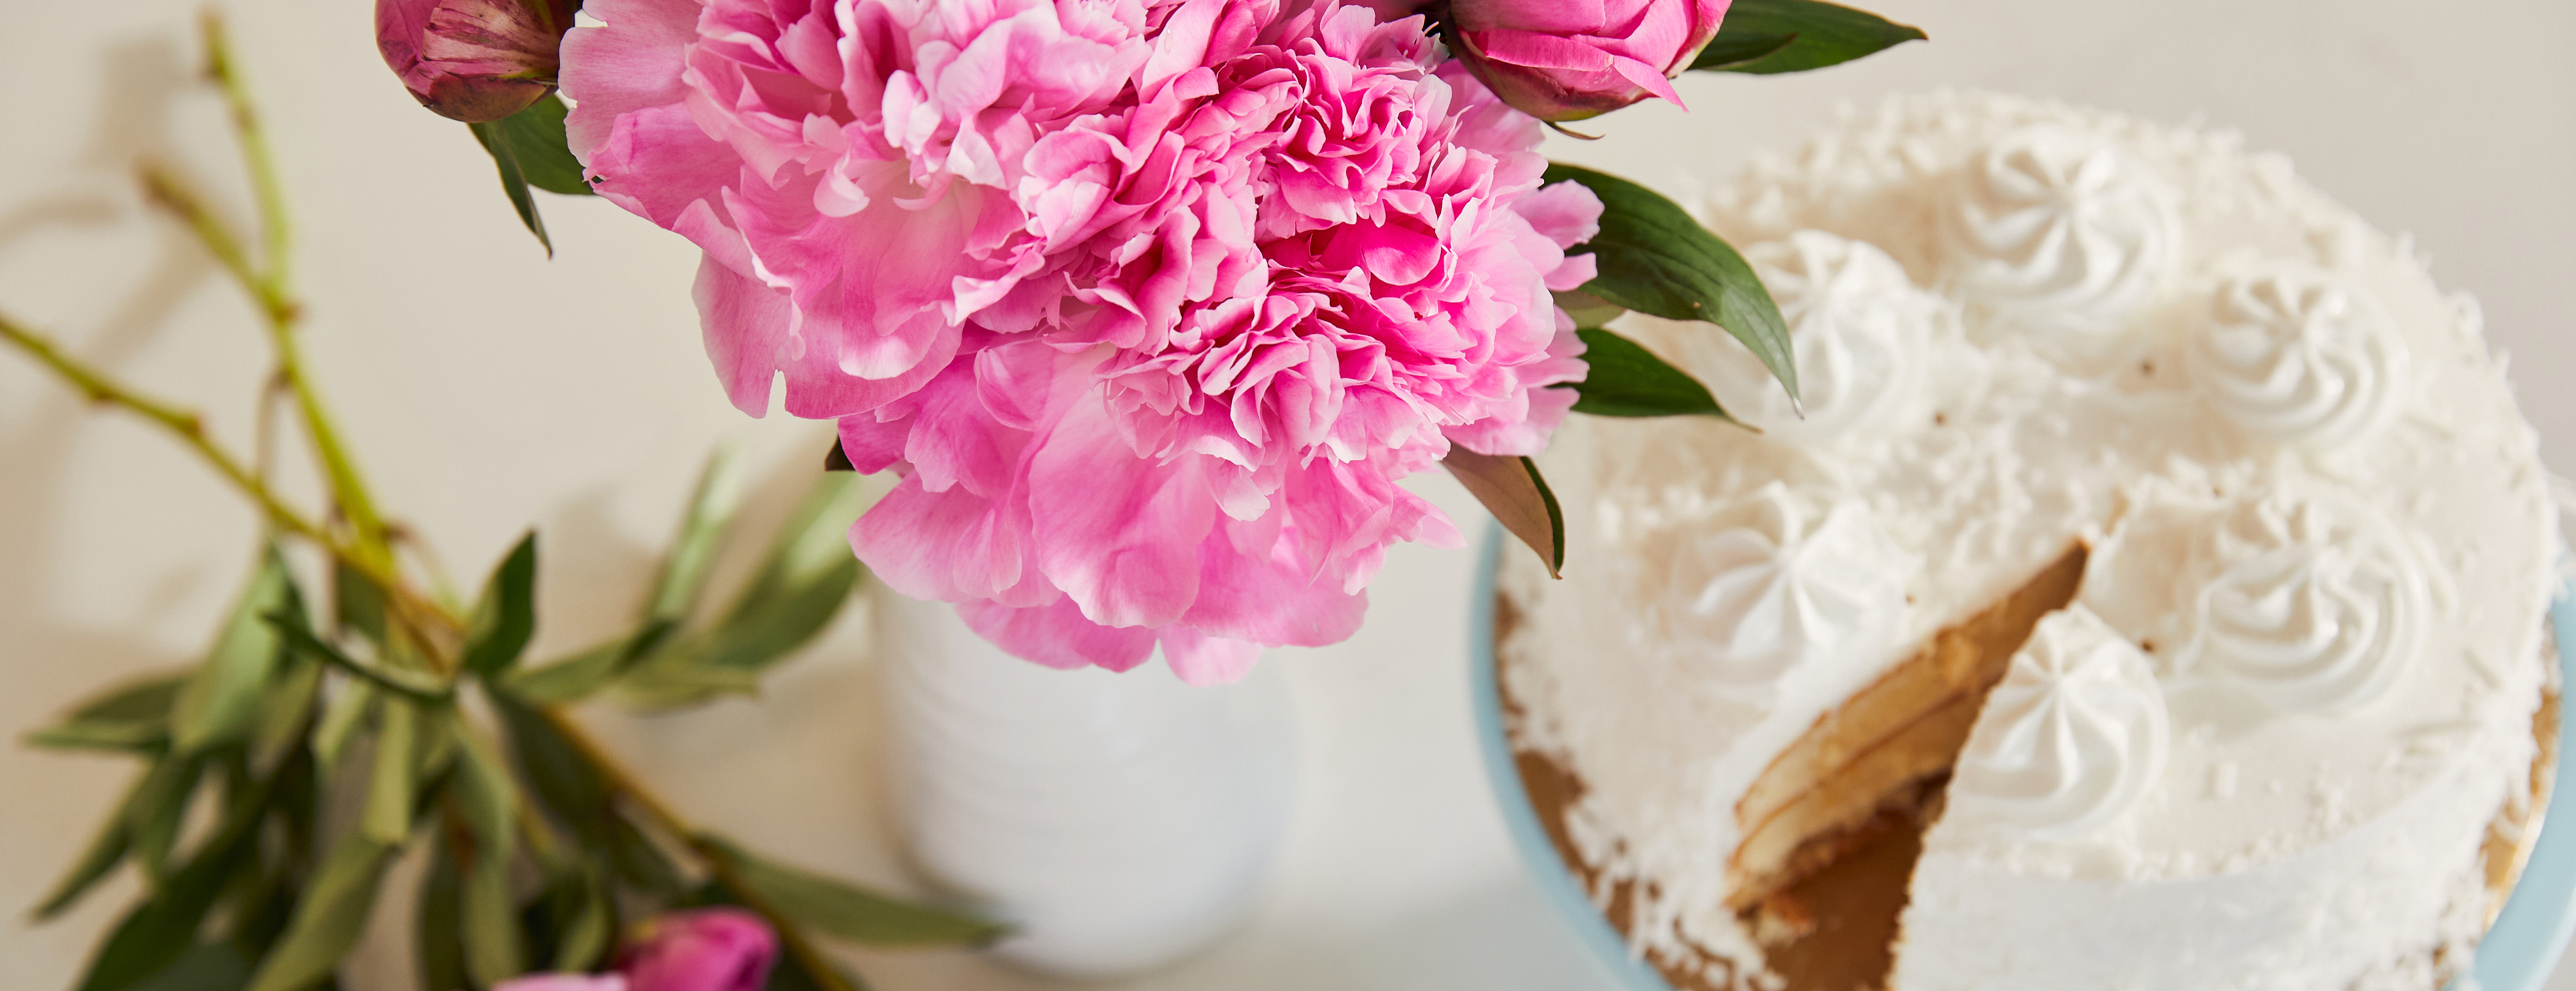 Bouquet of bright pink peonies on a table with frosted white birthday cake.